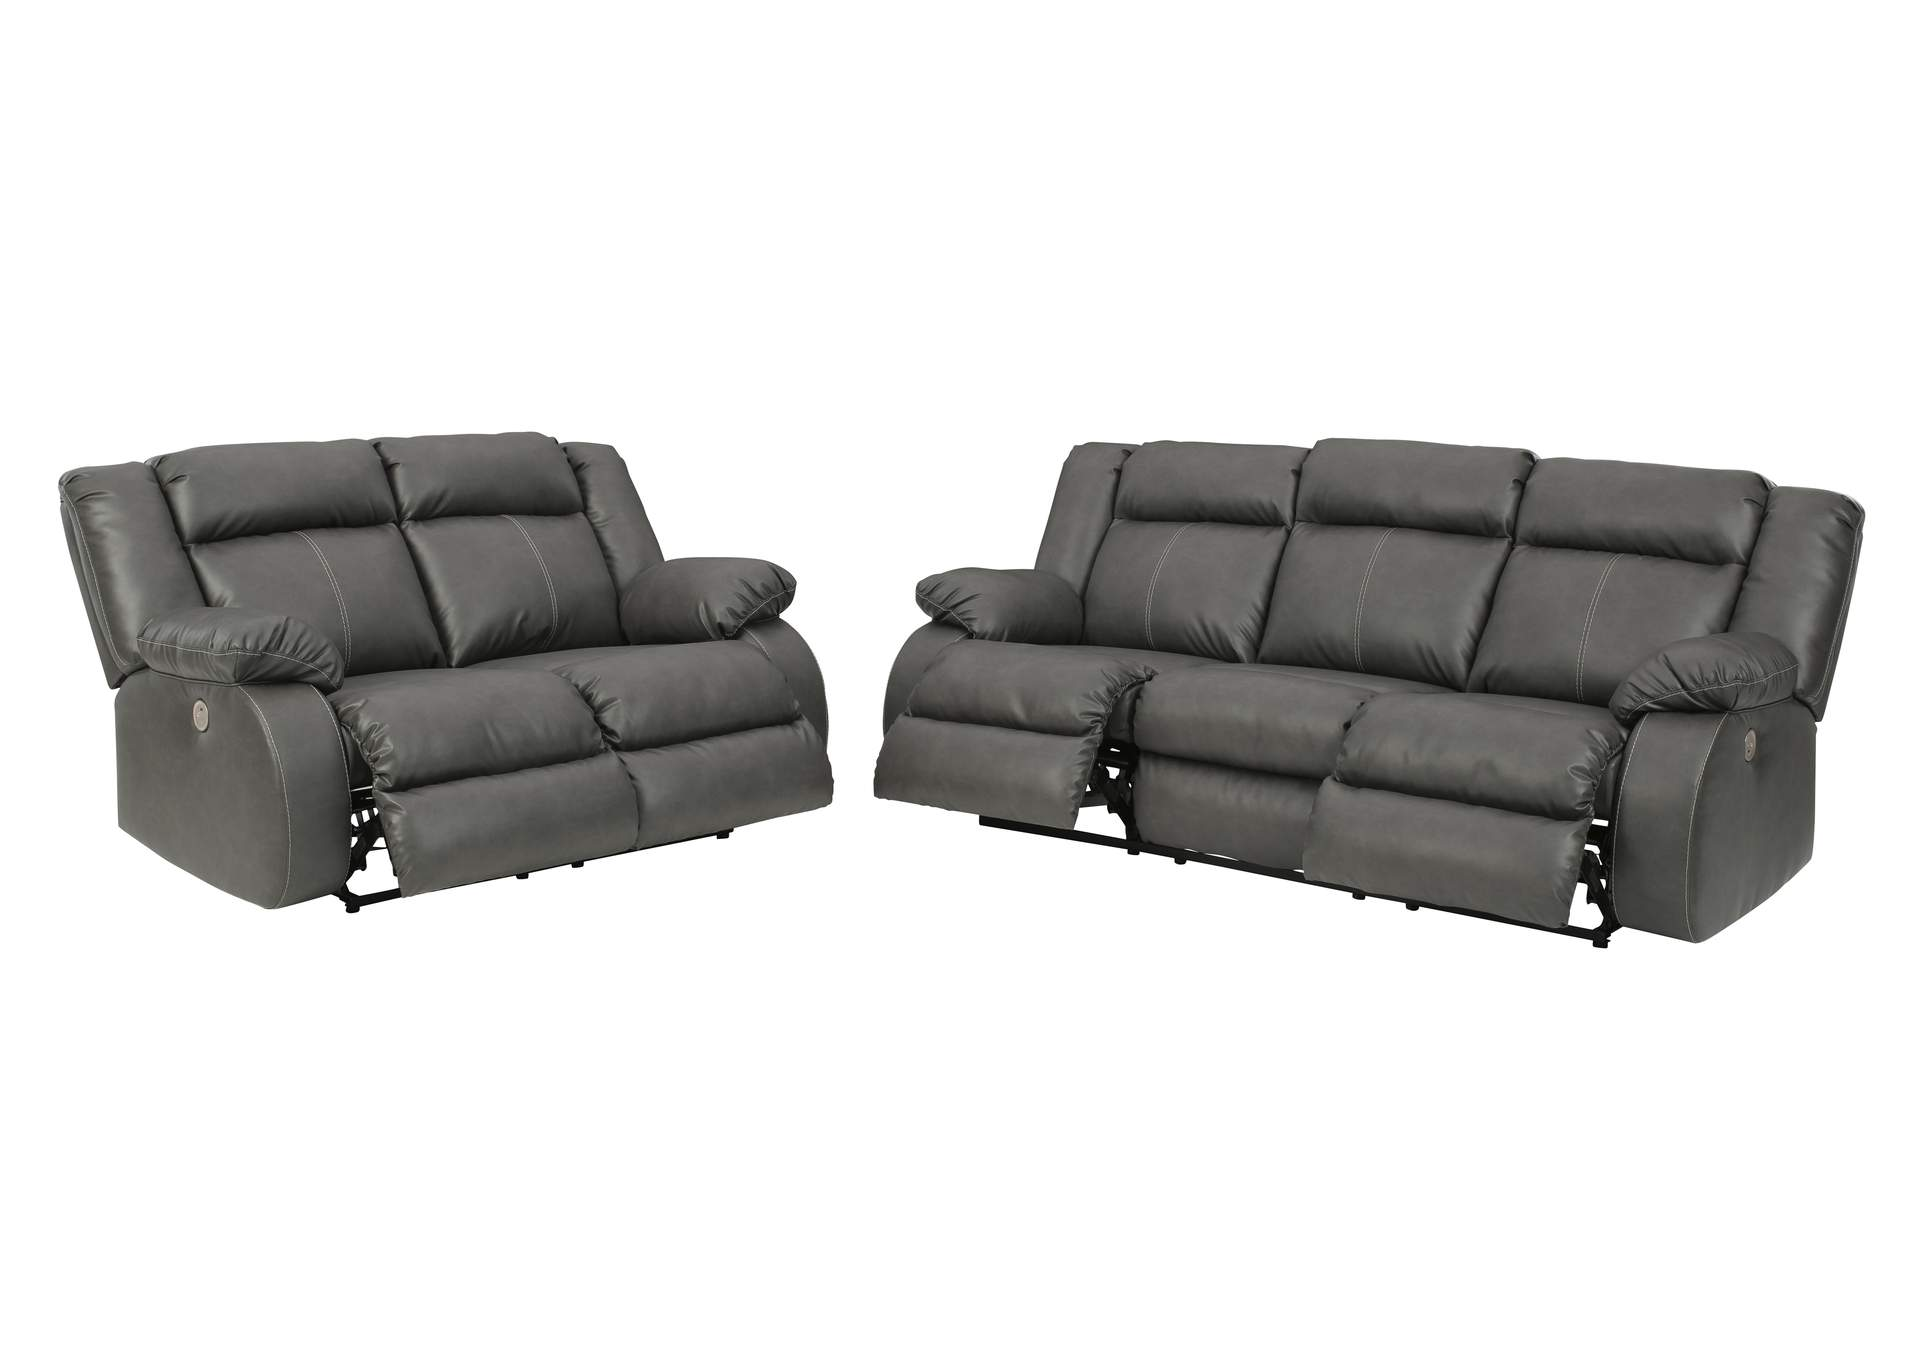 Denoron Power Reclining Sofa and Loveseat,Signature Design By Ashley